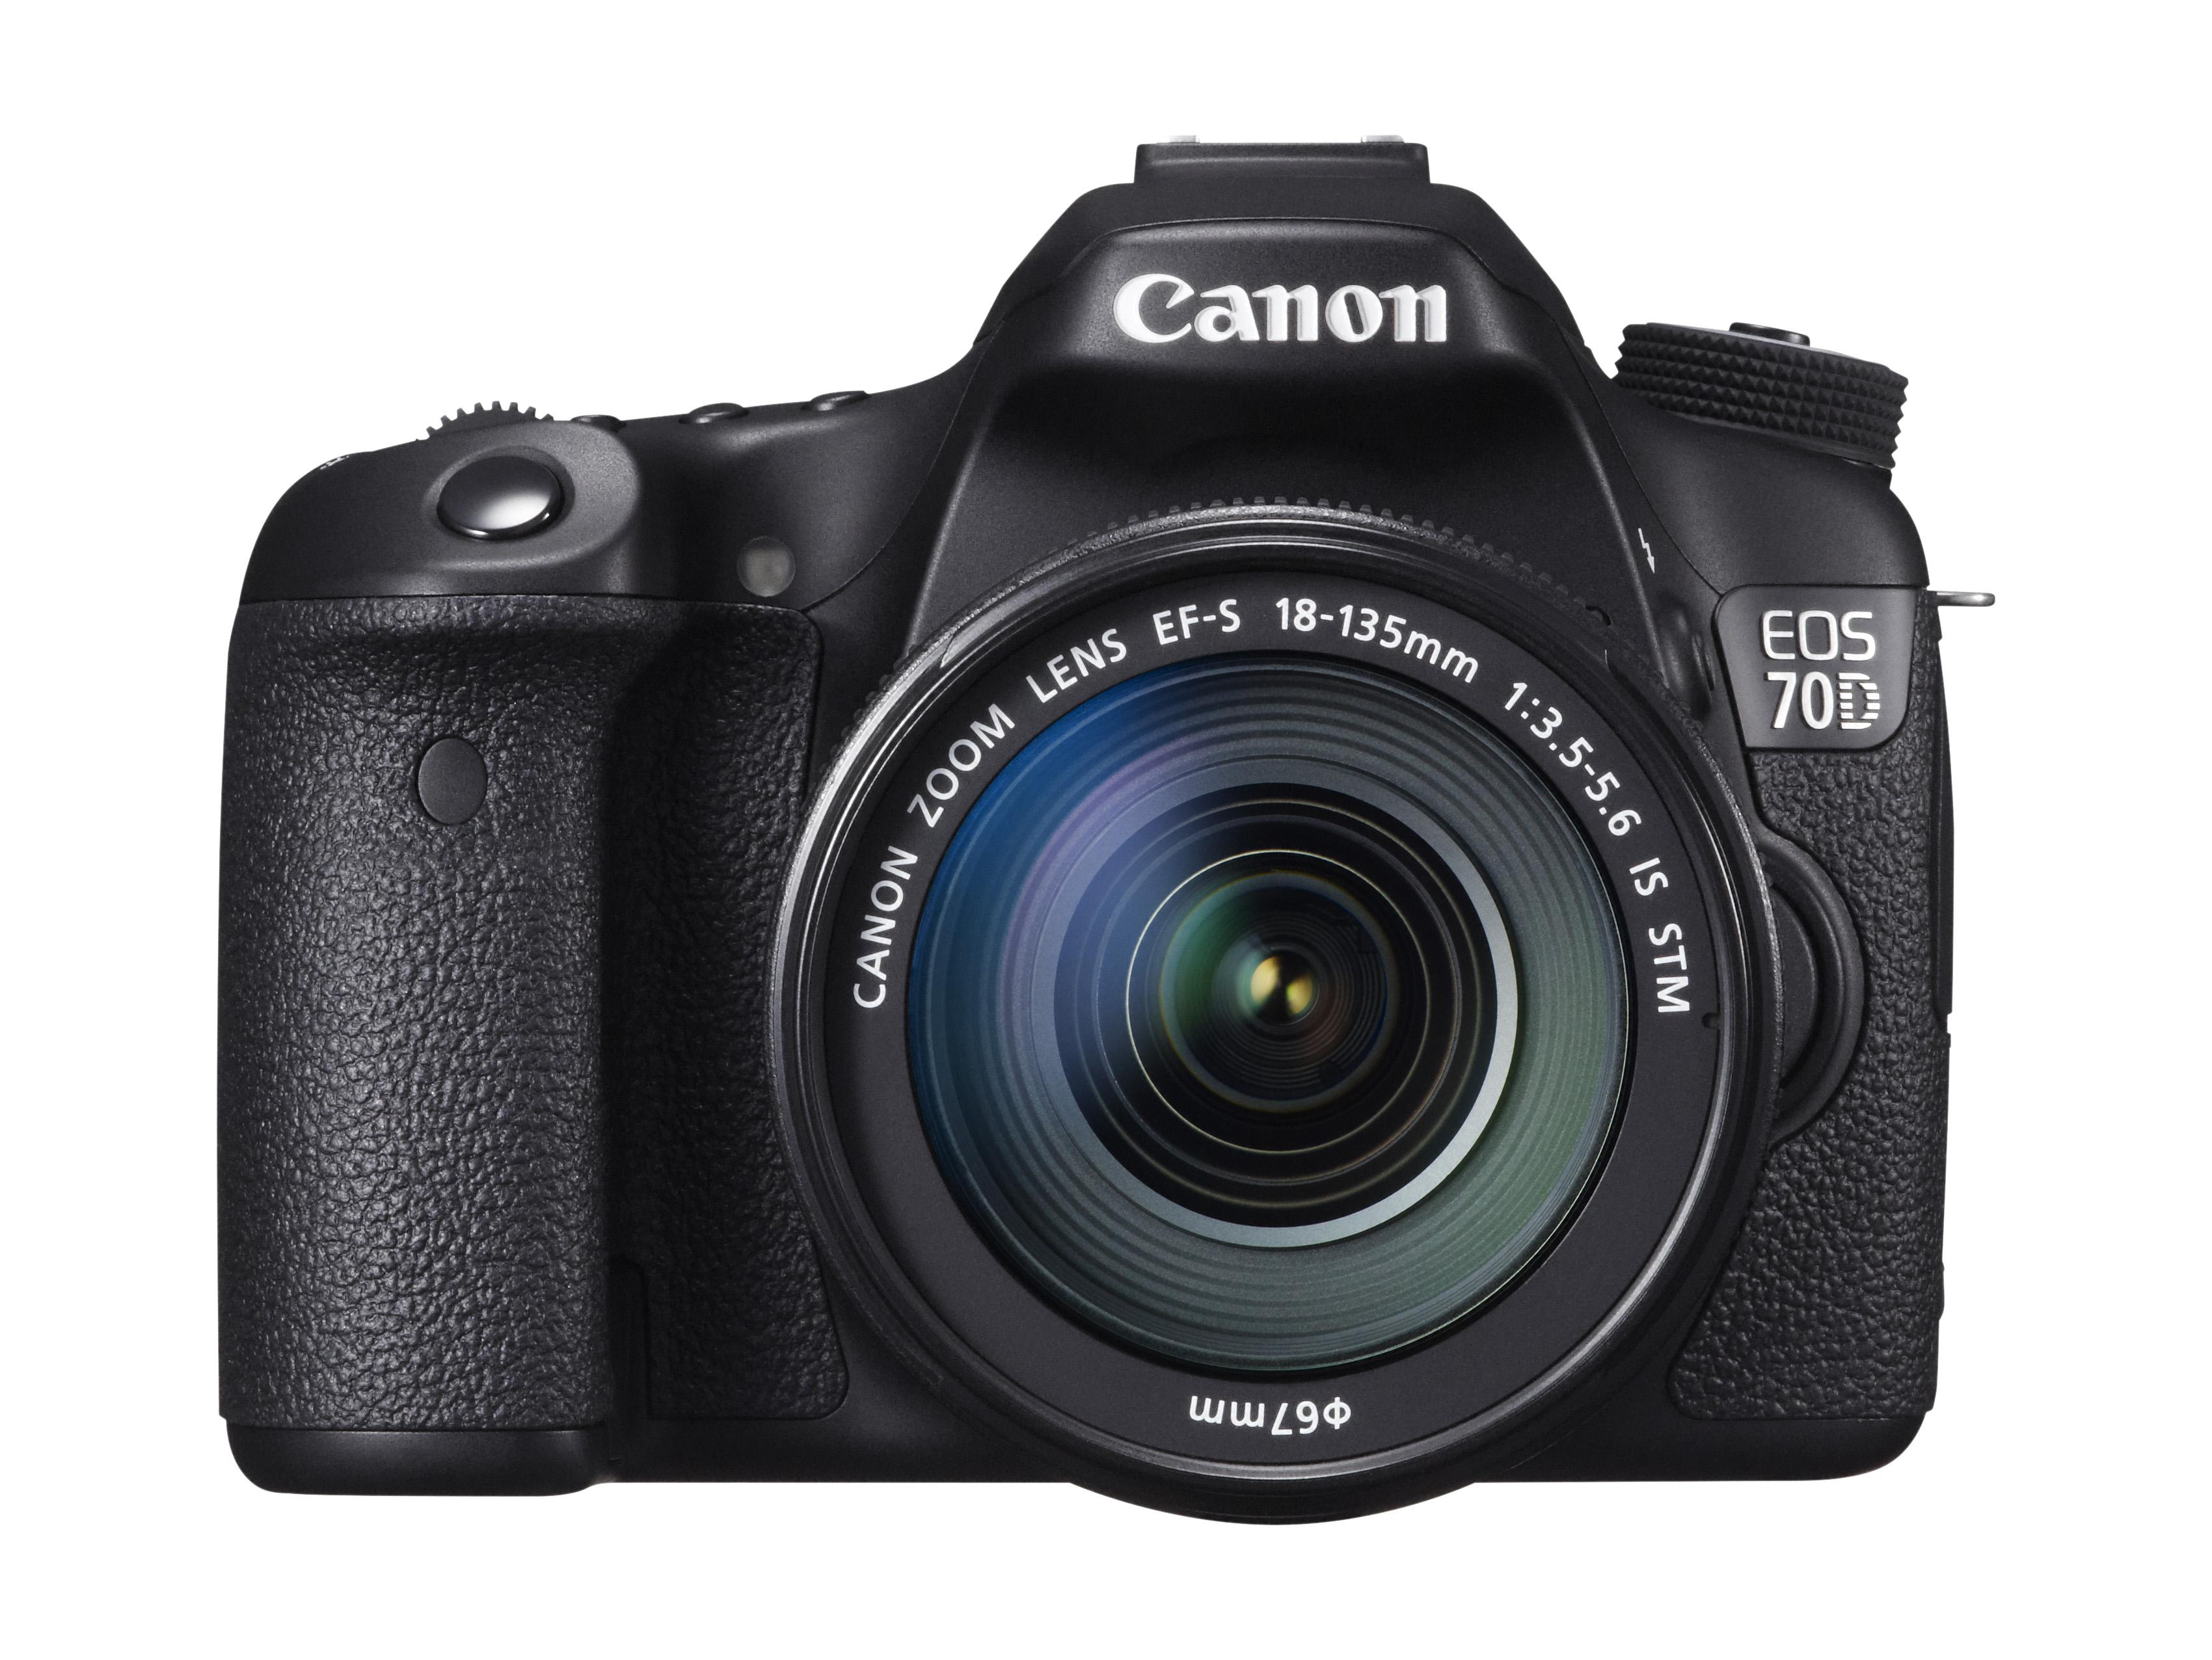 Canon EOS 70D med Canon EF-S 18-135 mm f/3.5 - 5.6 IS STM.Foto: Canon